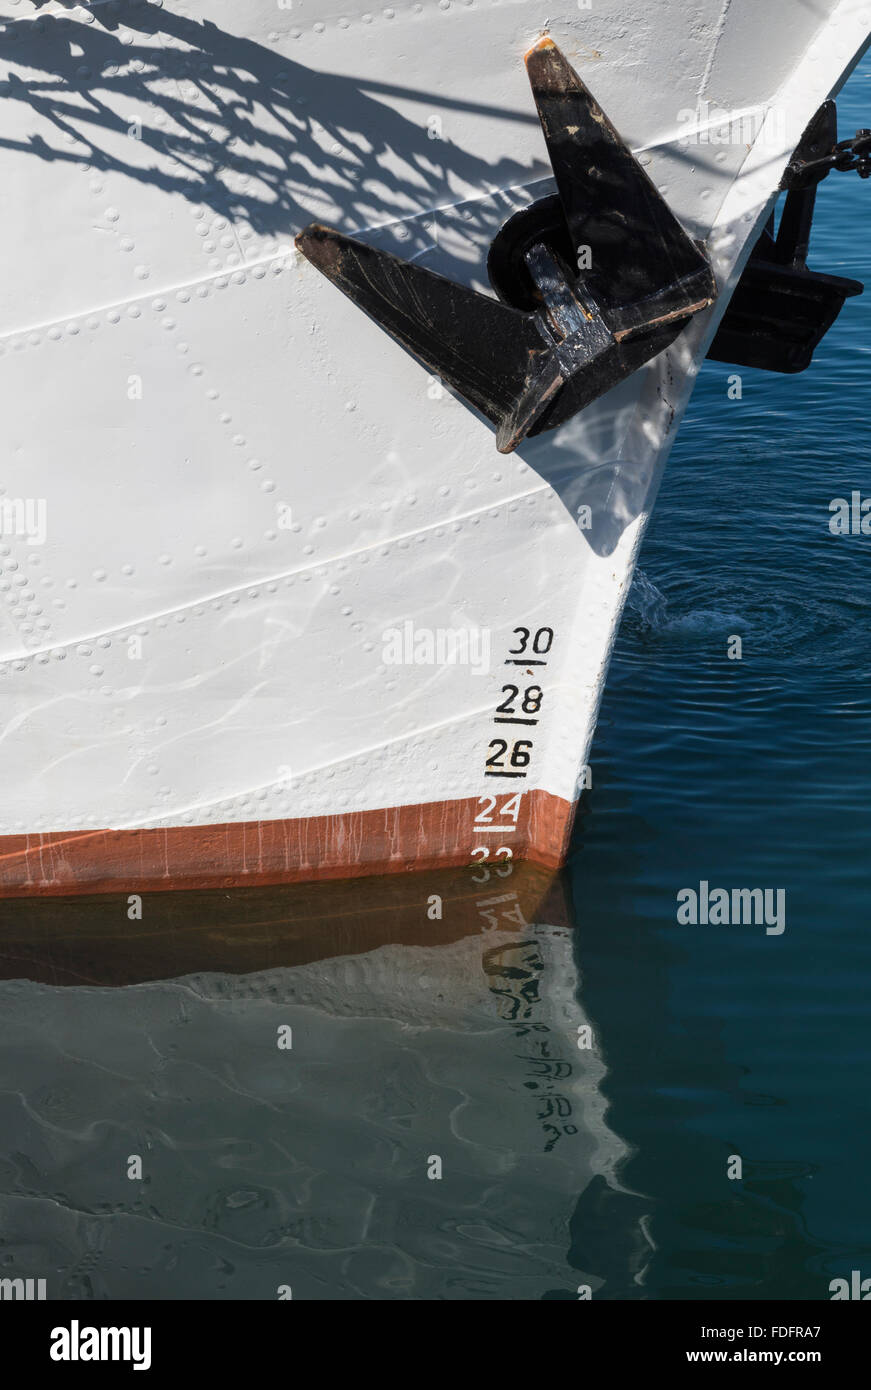 Draft or draught markings on bow of boat. - Stock Image